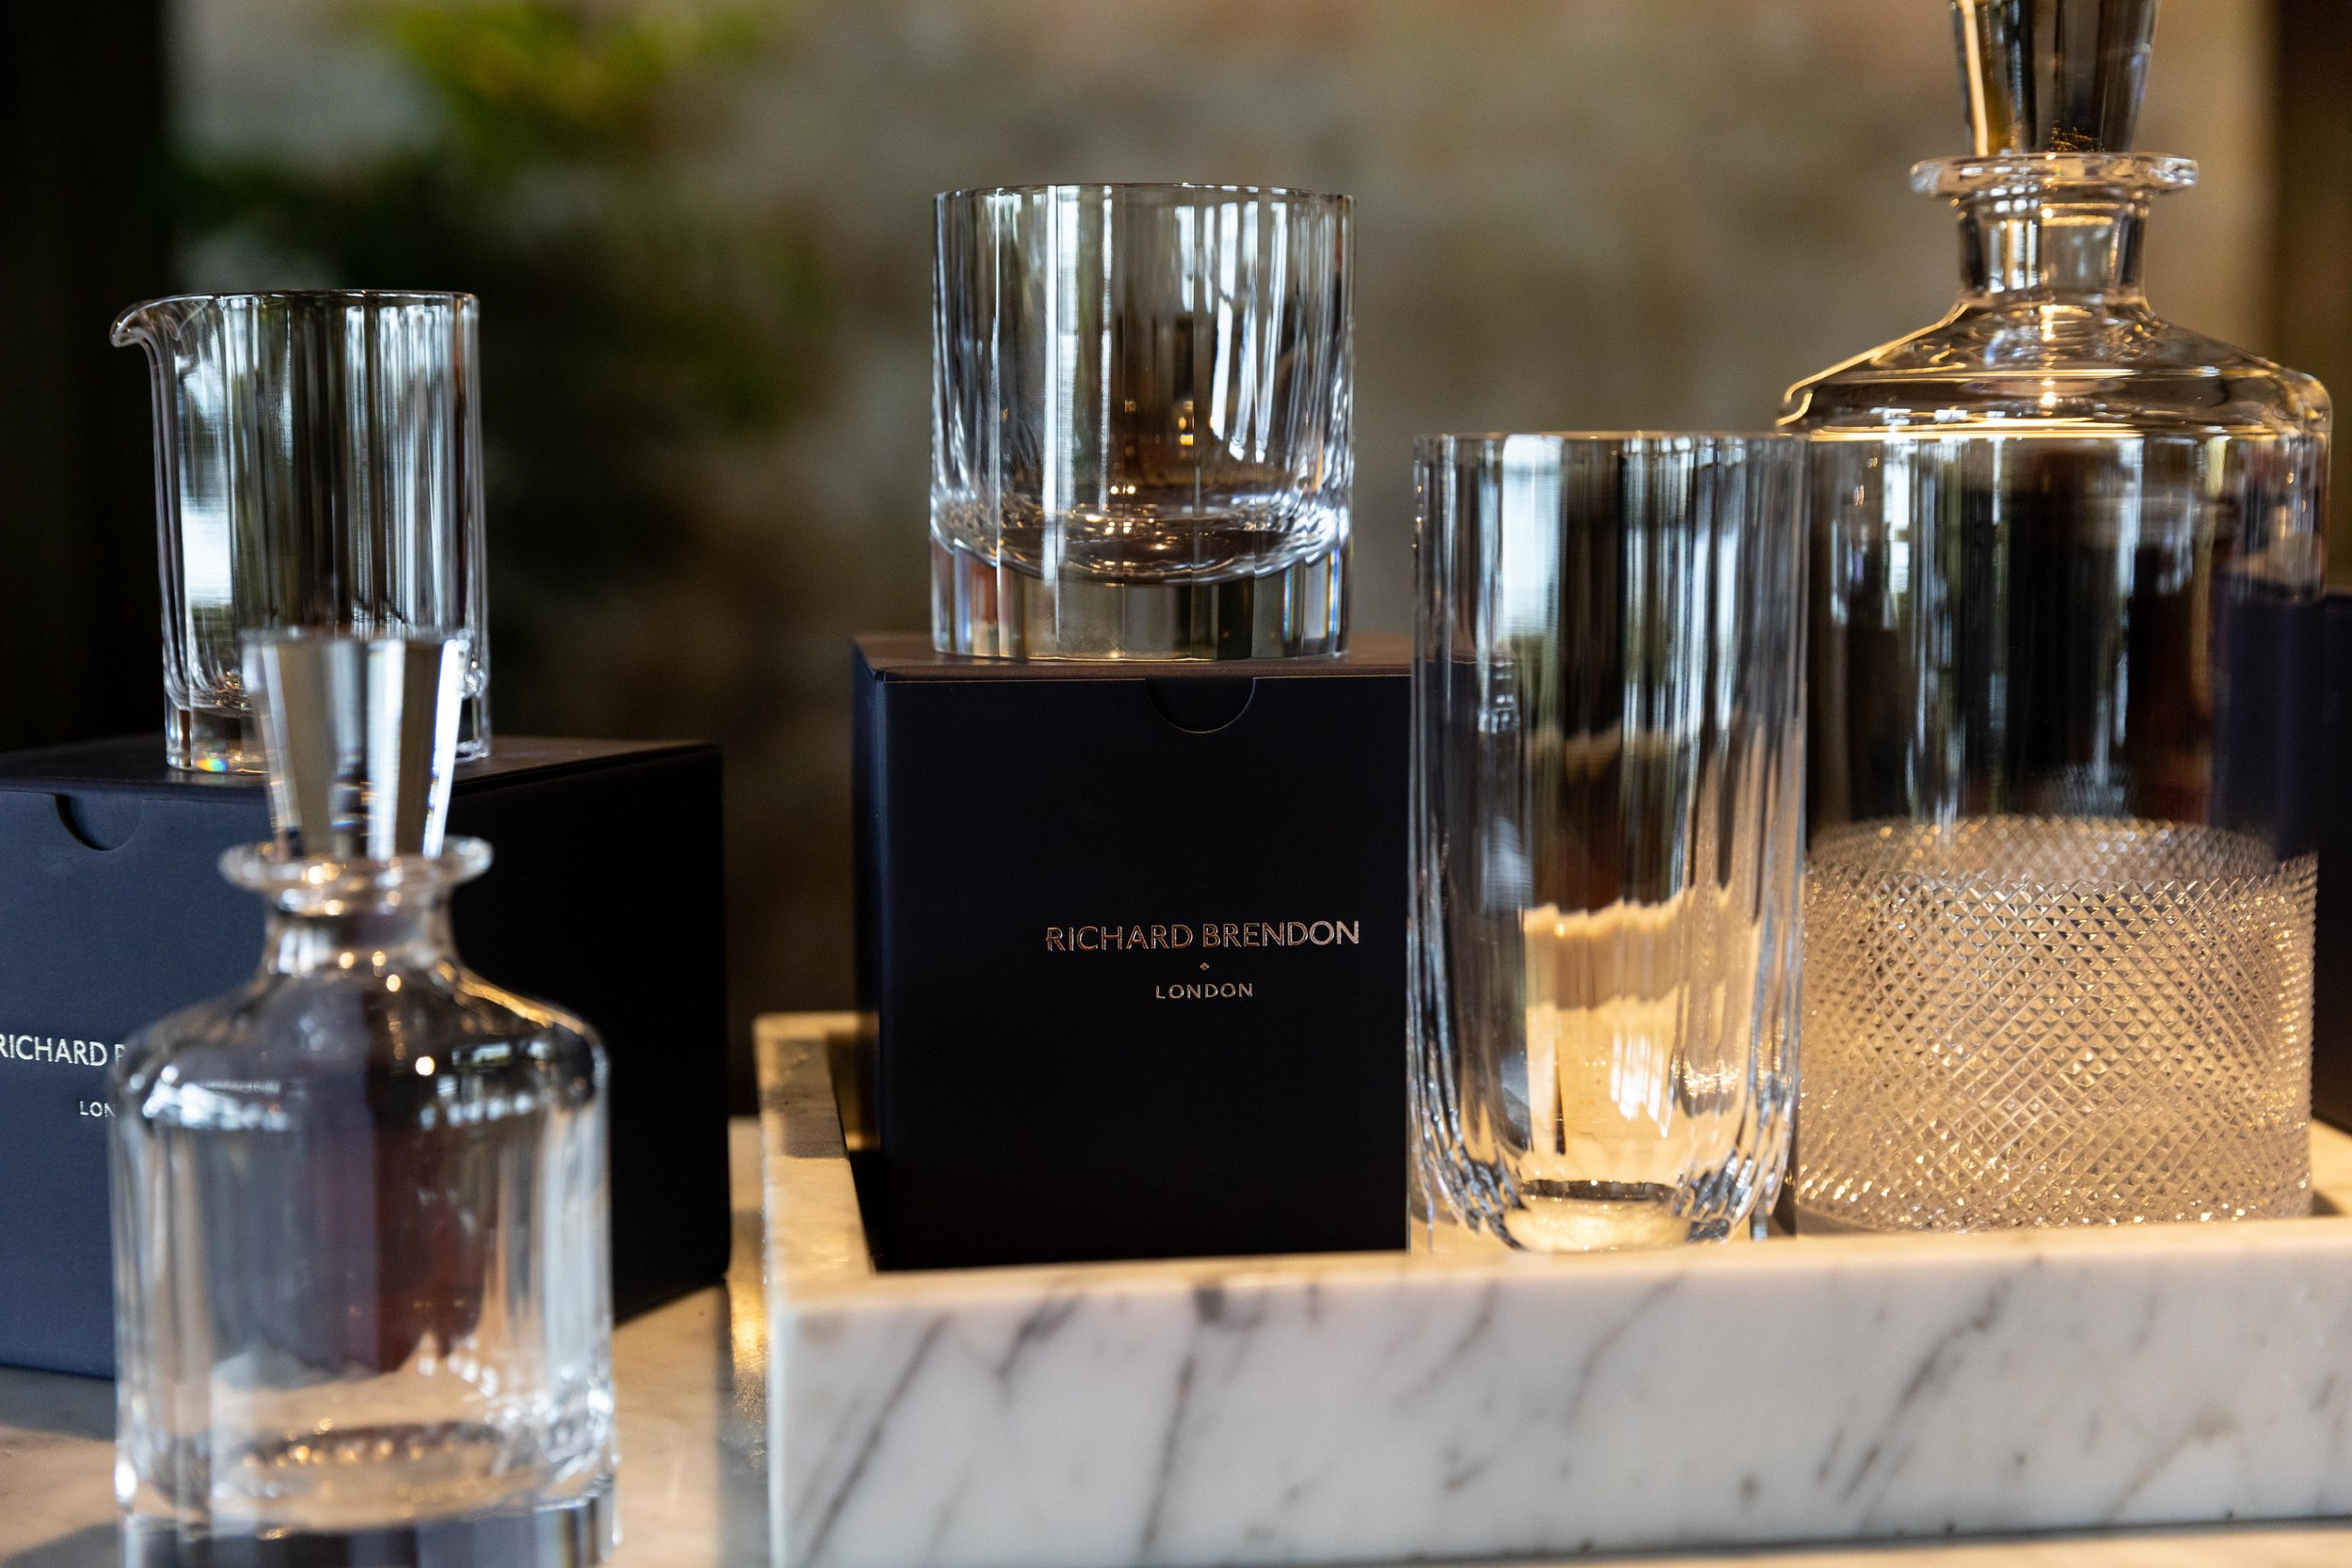 Richard Brendon London - The finest cut crystal bareware.A perfect pairing of craftsmanship and design